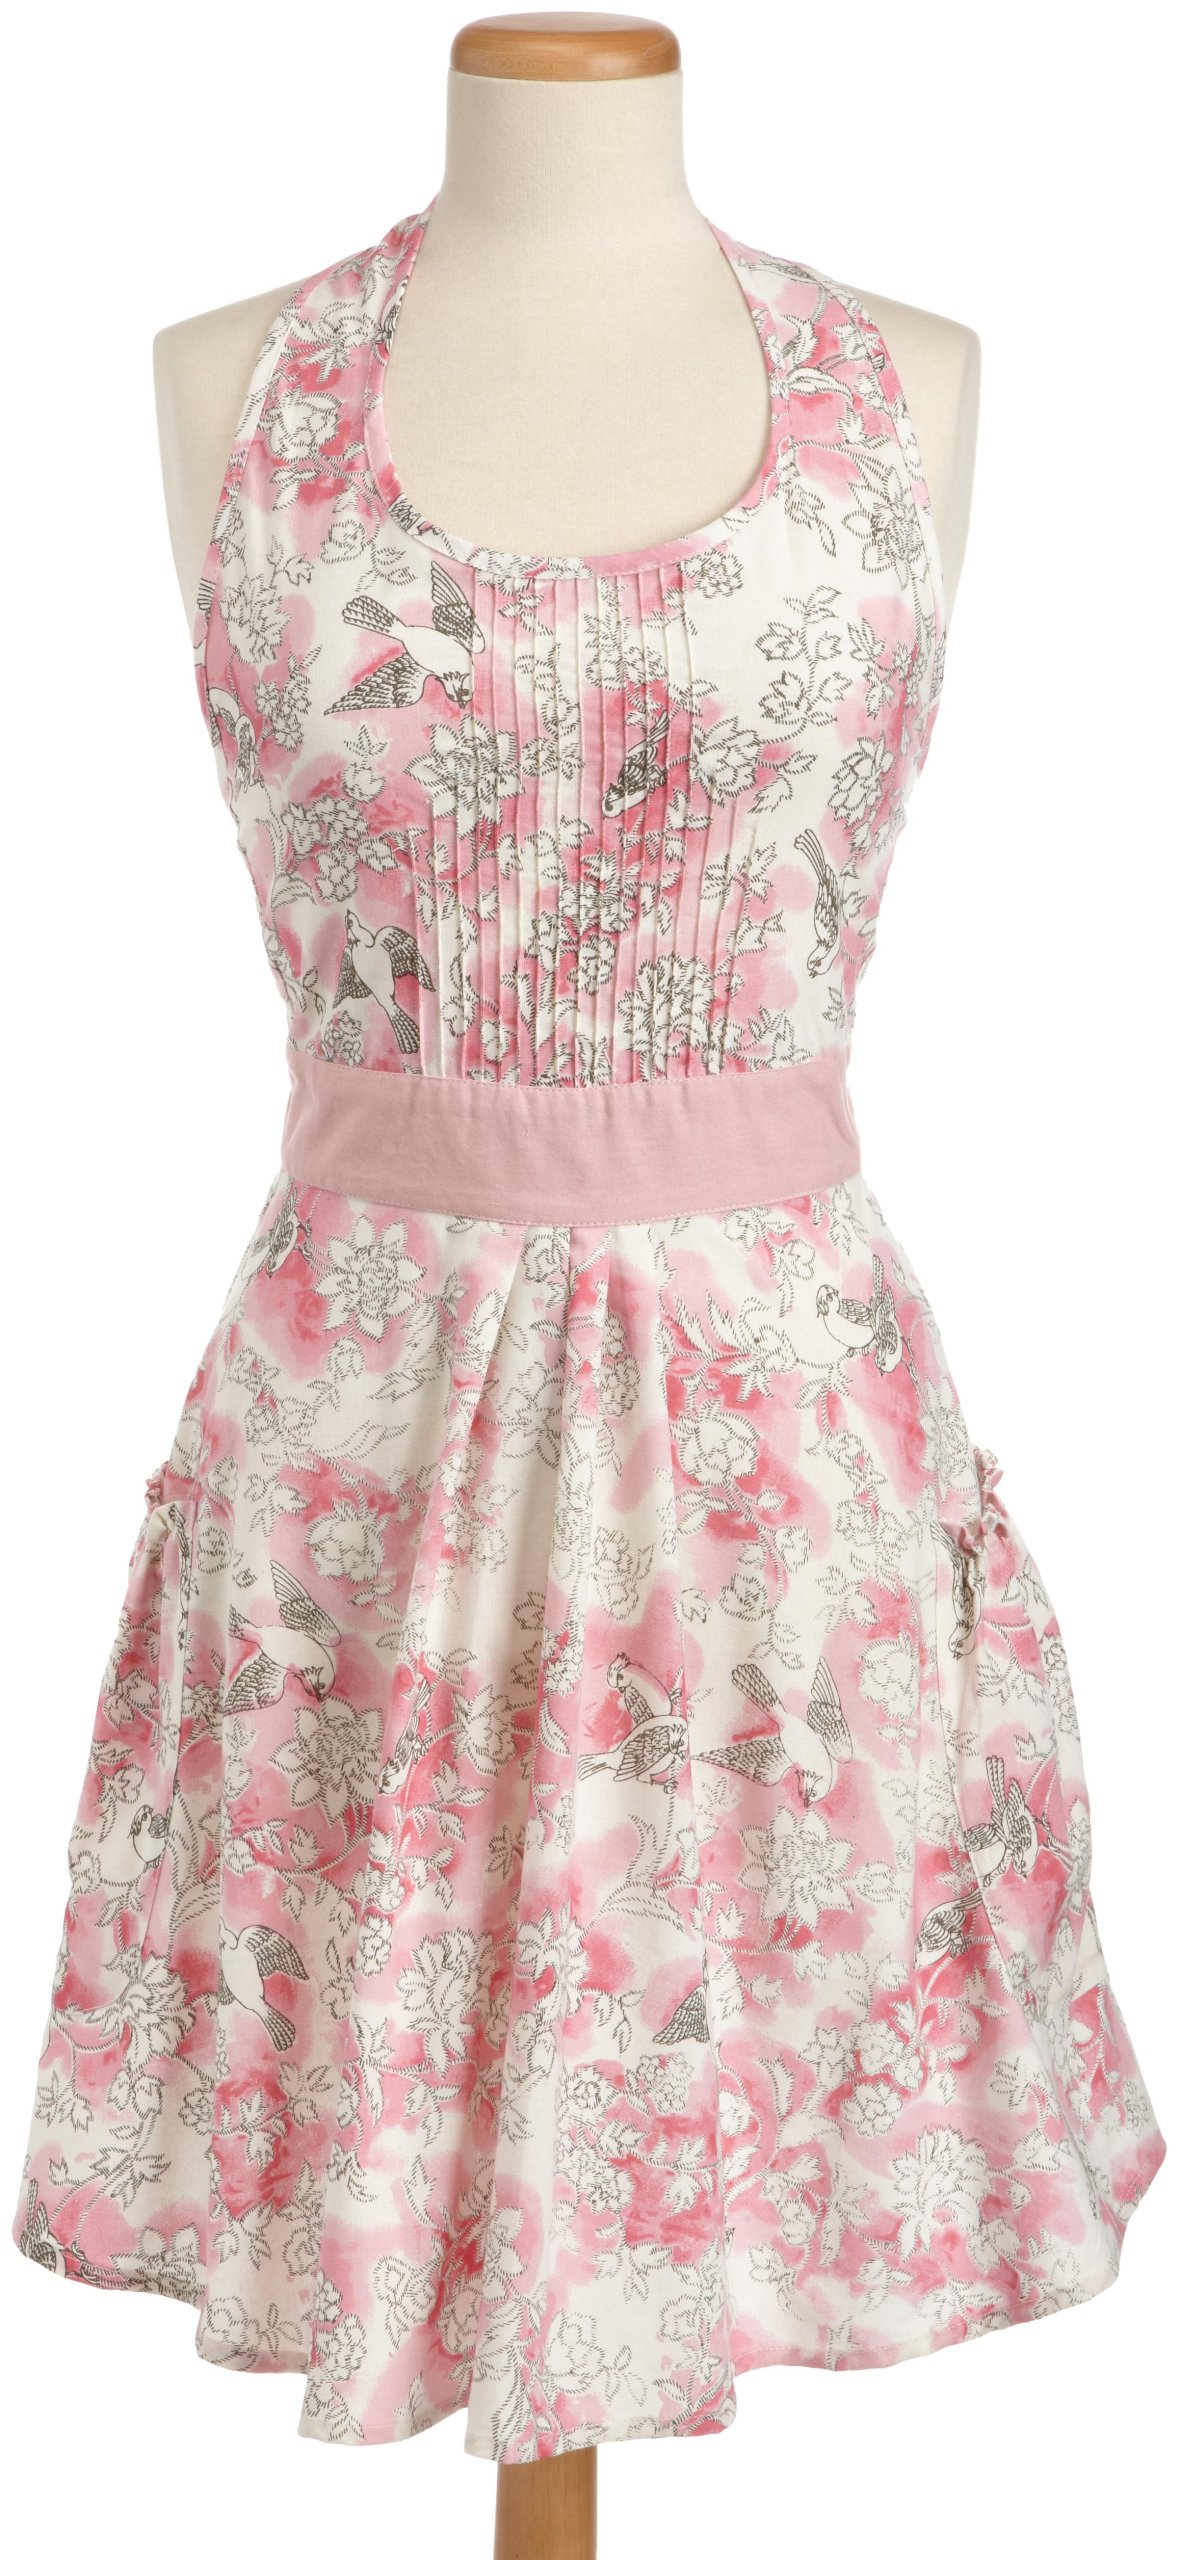 DII 100% Cotton Vintage Blushing Birds Print Full Kitchen Apron with Bib Pin-Tucking, 2 Side Pockets, & Adjustable Waist Ties, Cute Chef Apron Is Machine Washable With Front Pockets, Perfect for Cooking, Baking, Hosting & More